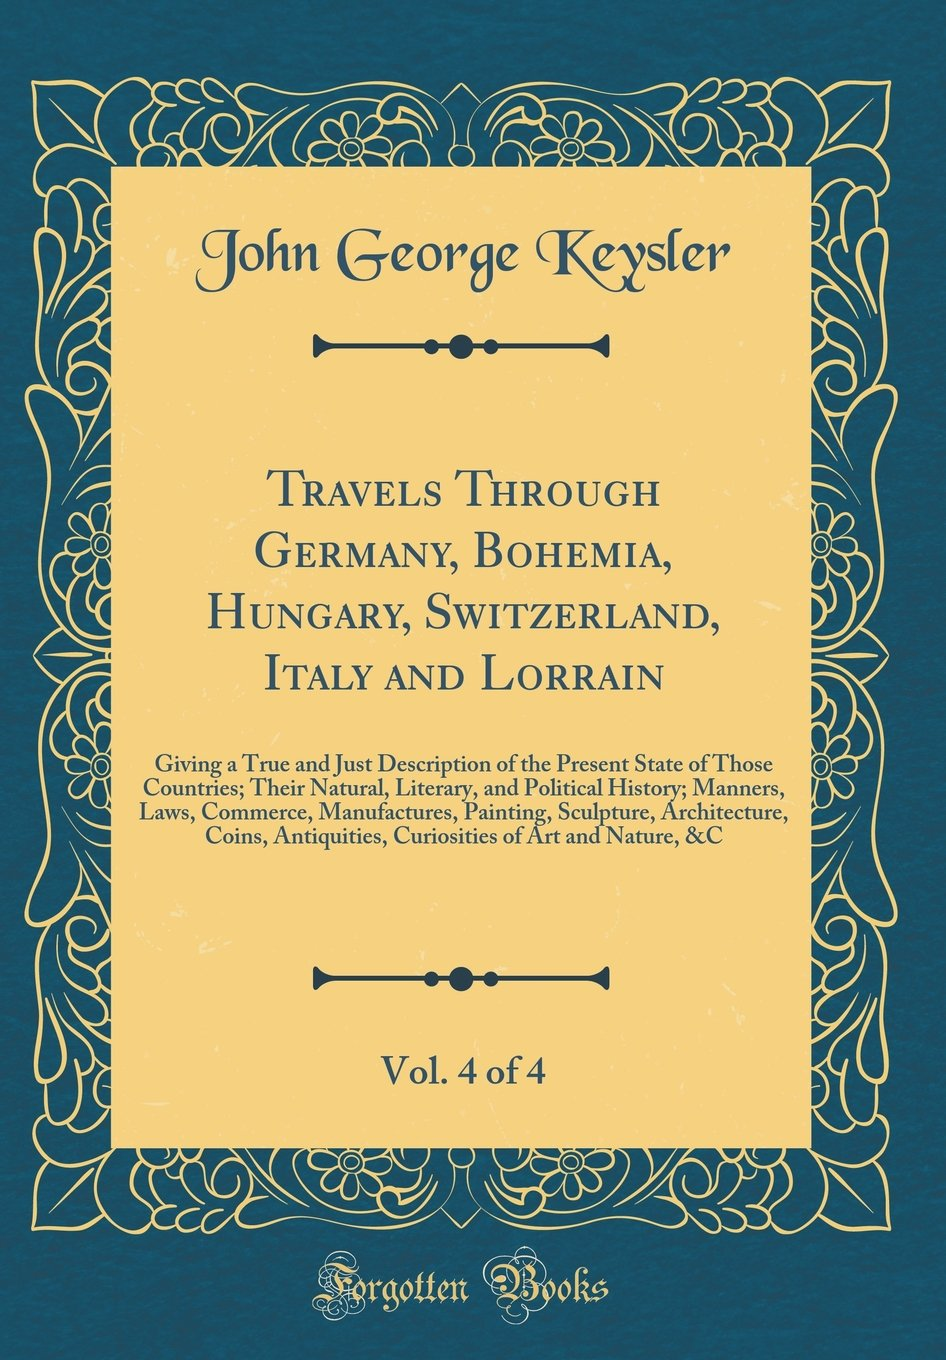 Read Online Travels Through Germany, Bohemia, Hungary, Switzerland, Italy and Lorrain, Vol. 4 of 4: Giving a True and Just Description of the Present State of ... Manners, Laws, Commerce, Manufactures, Pain pdf epub